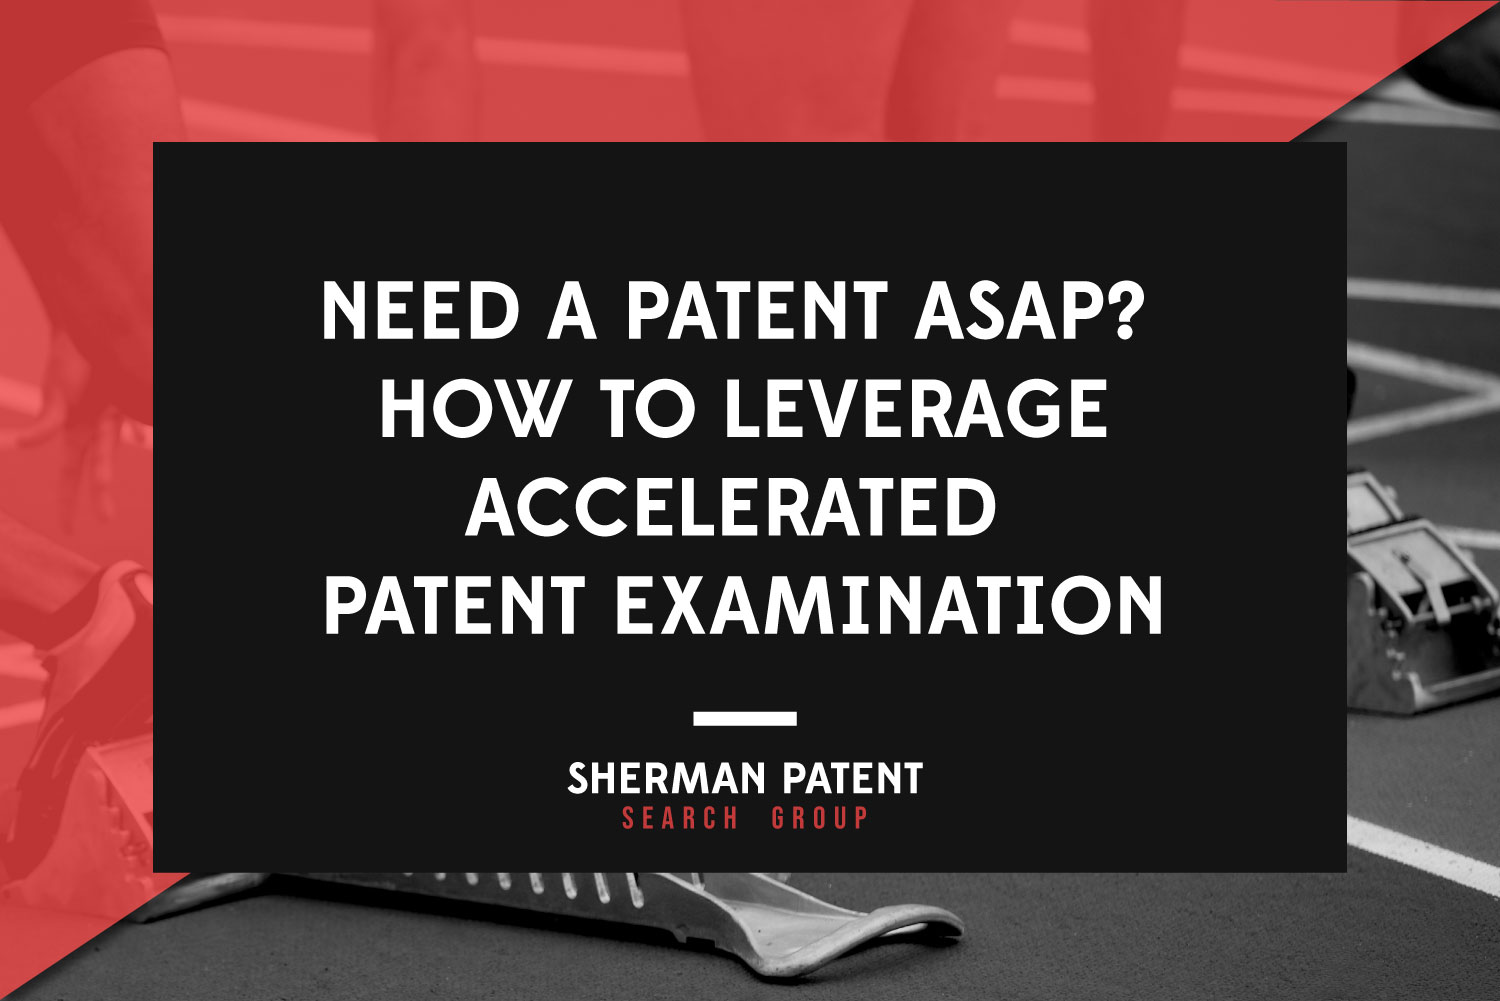 spsg-Need-a-Patent-ASAP--How-to-Leverage-Accelerated-Patent-Examination-web.jpg